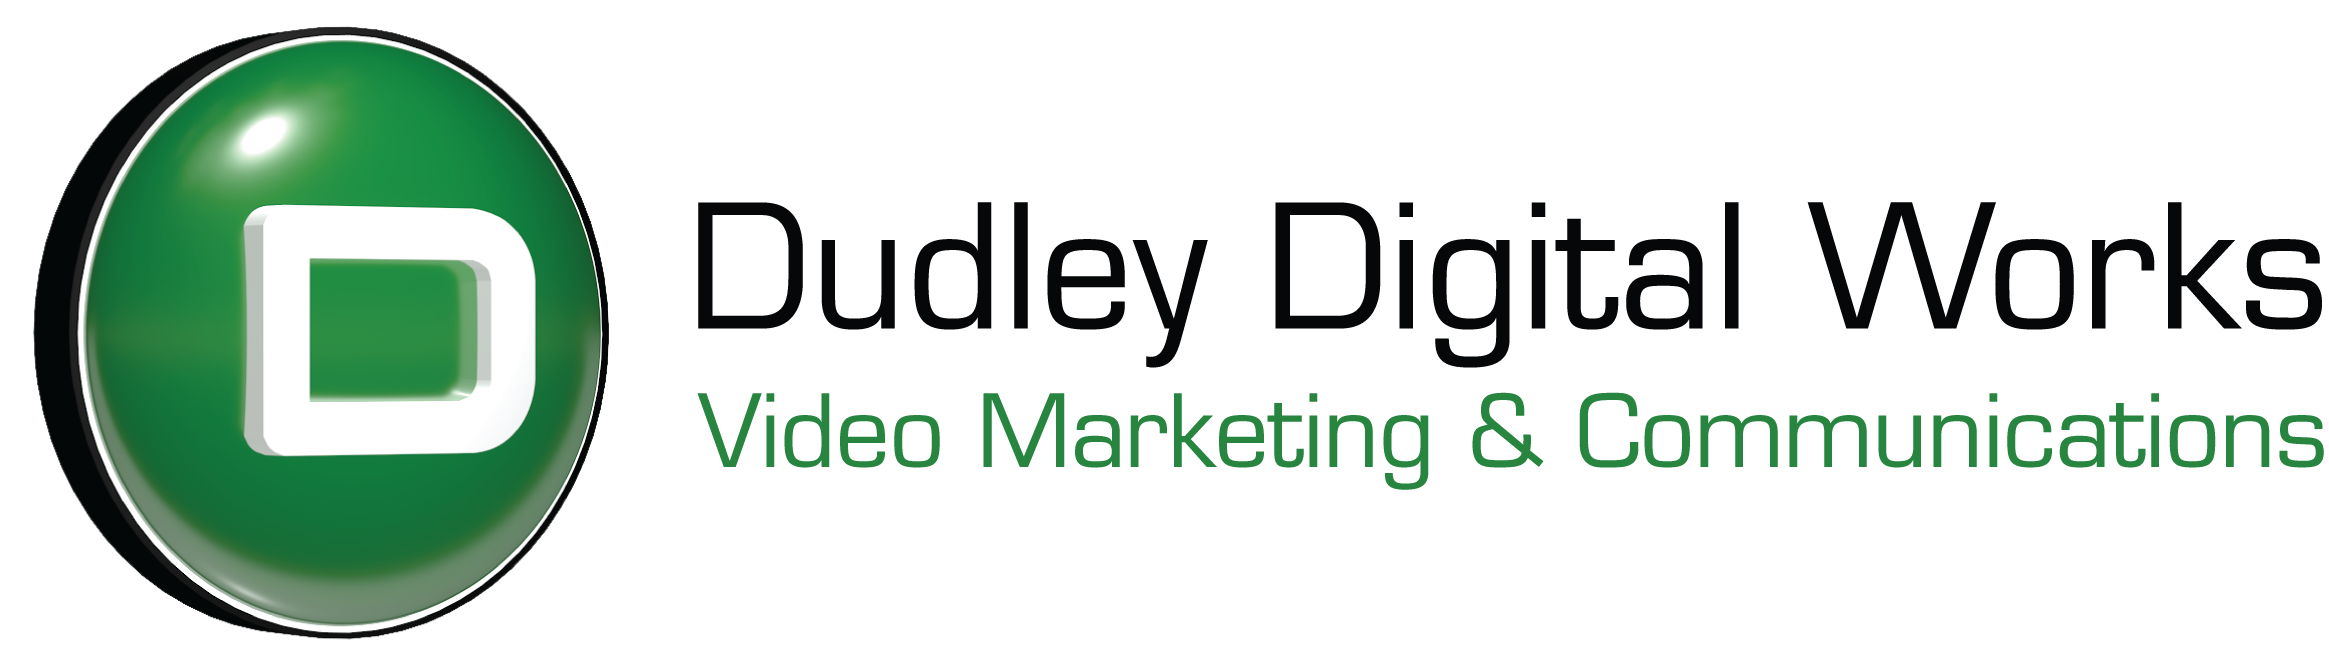 Dudley Digital Works